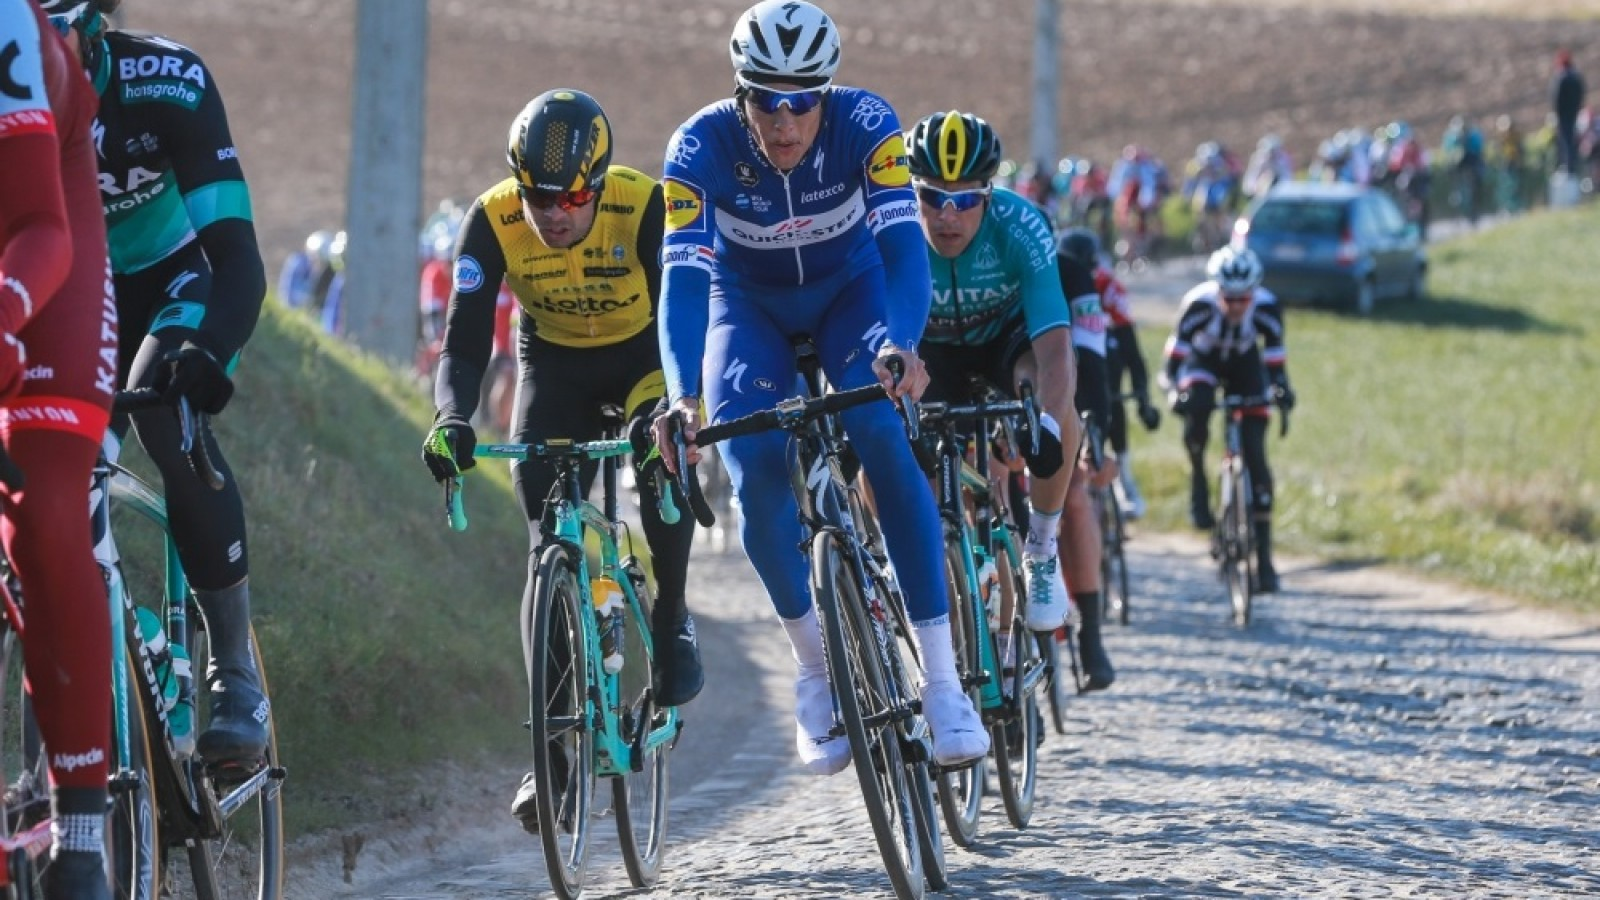 Niki Terpstra wint solo na lange vlucht in E3 Harelbeke NH